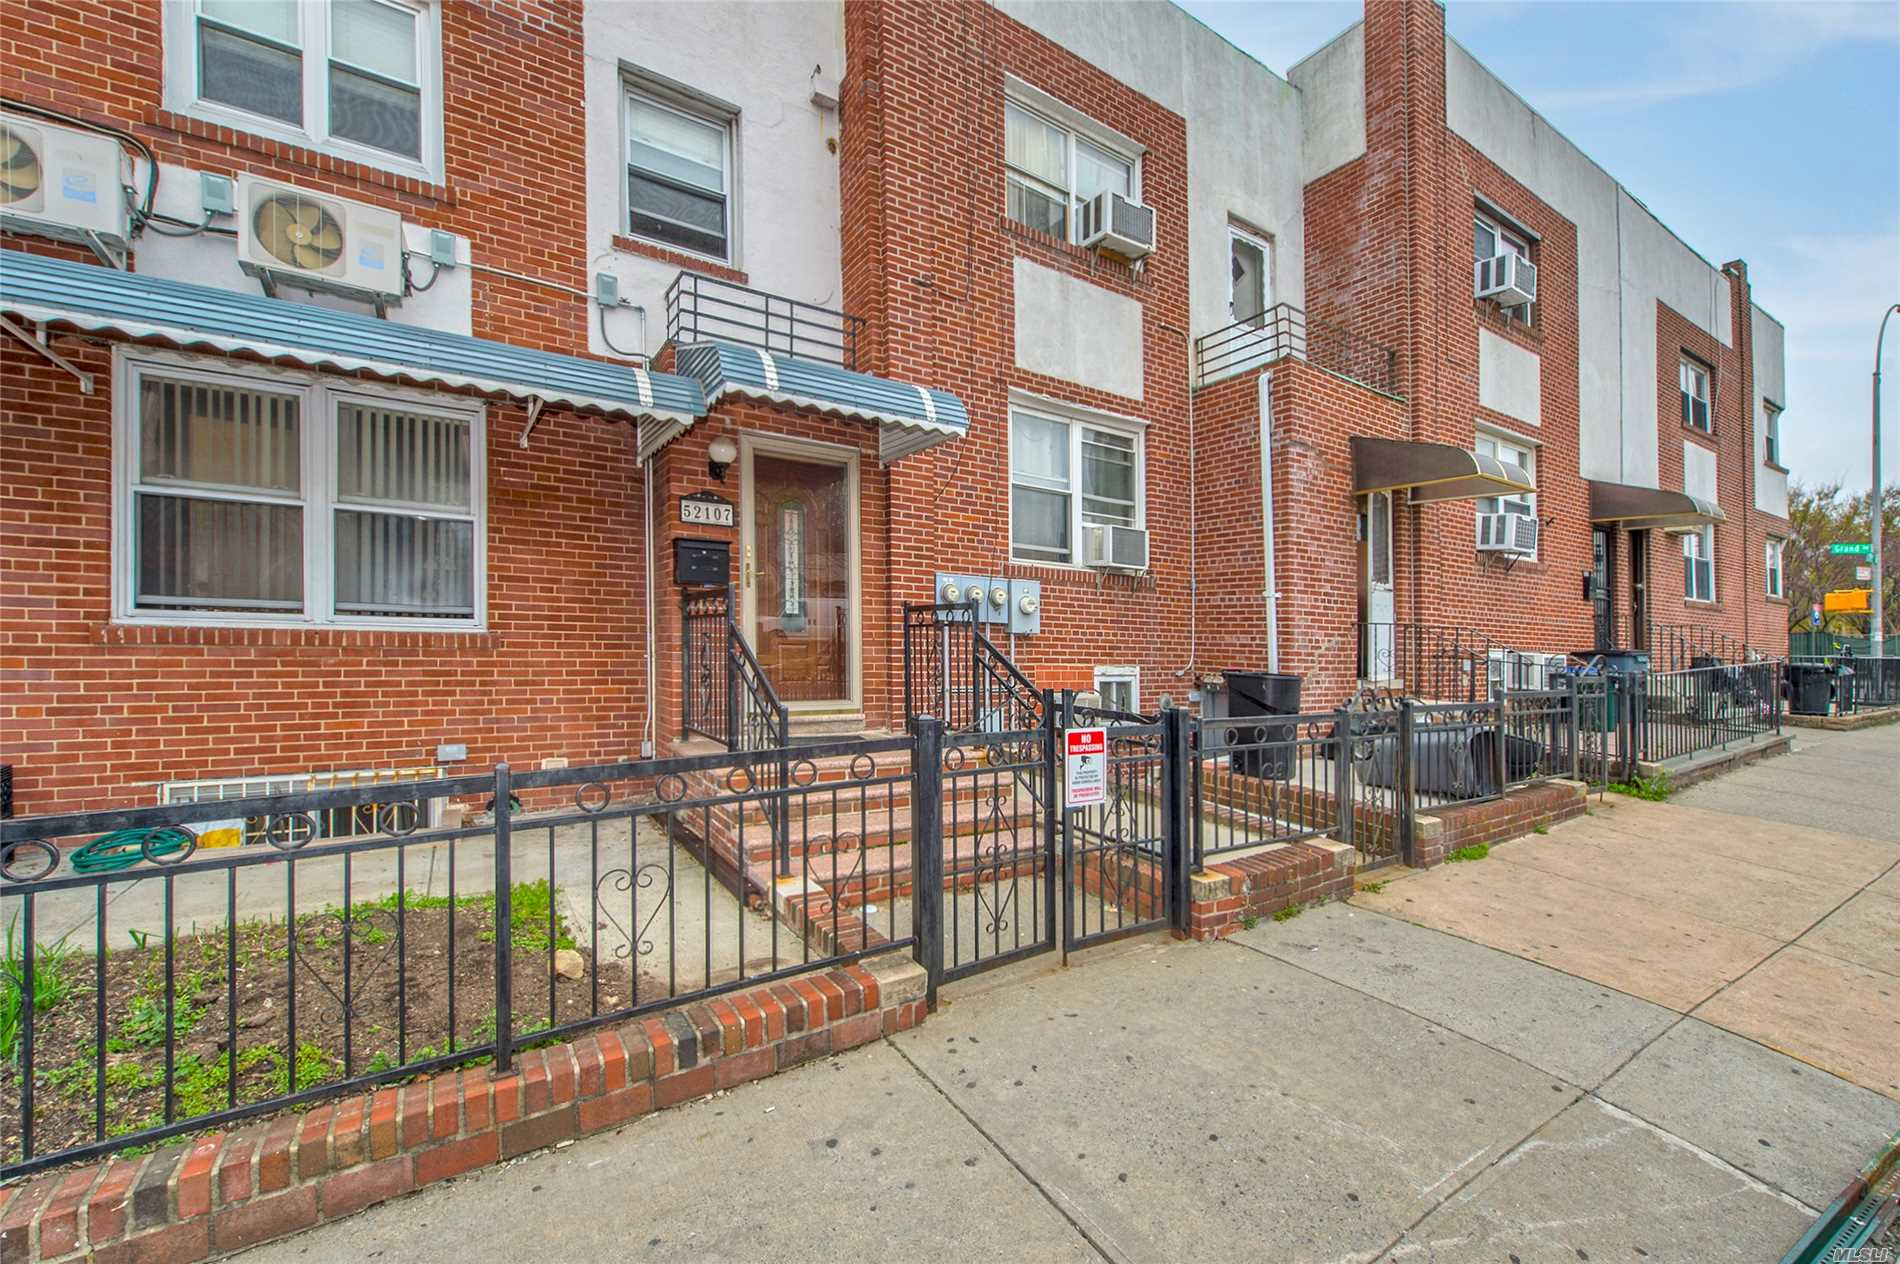 Newly Renovated Single Family Brick Home Located In Elmhurst. Less Than One Block Away From Elmhurst Park. Conveniently Mins Distance To Grand Ave With Restaurants, Cafes, Supermarkets And Much More. Close To Transportations (Bus/Q47). Young Brick Exterior With First Floor Featuring Bright Rooms, Hardwood Floors Thru-Out With Stainless Steel Appliances. 1ST FL Offering 2 Bedroom, Full Bath, Kitchen And D/R, And 2FL With 3 Bedroom, Full Bath And L/R. Separate Entrance to the Garage And Basement